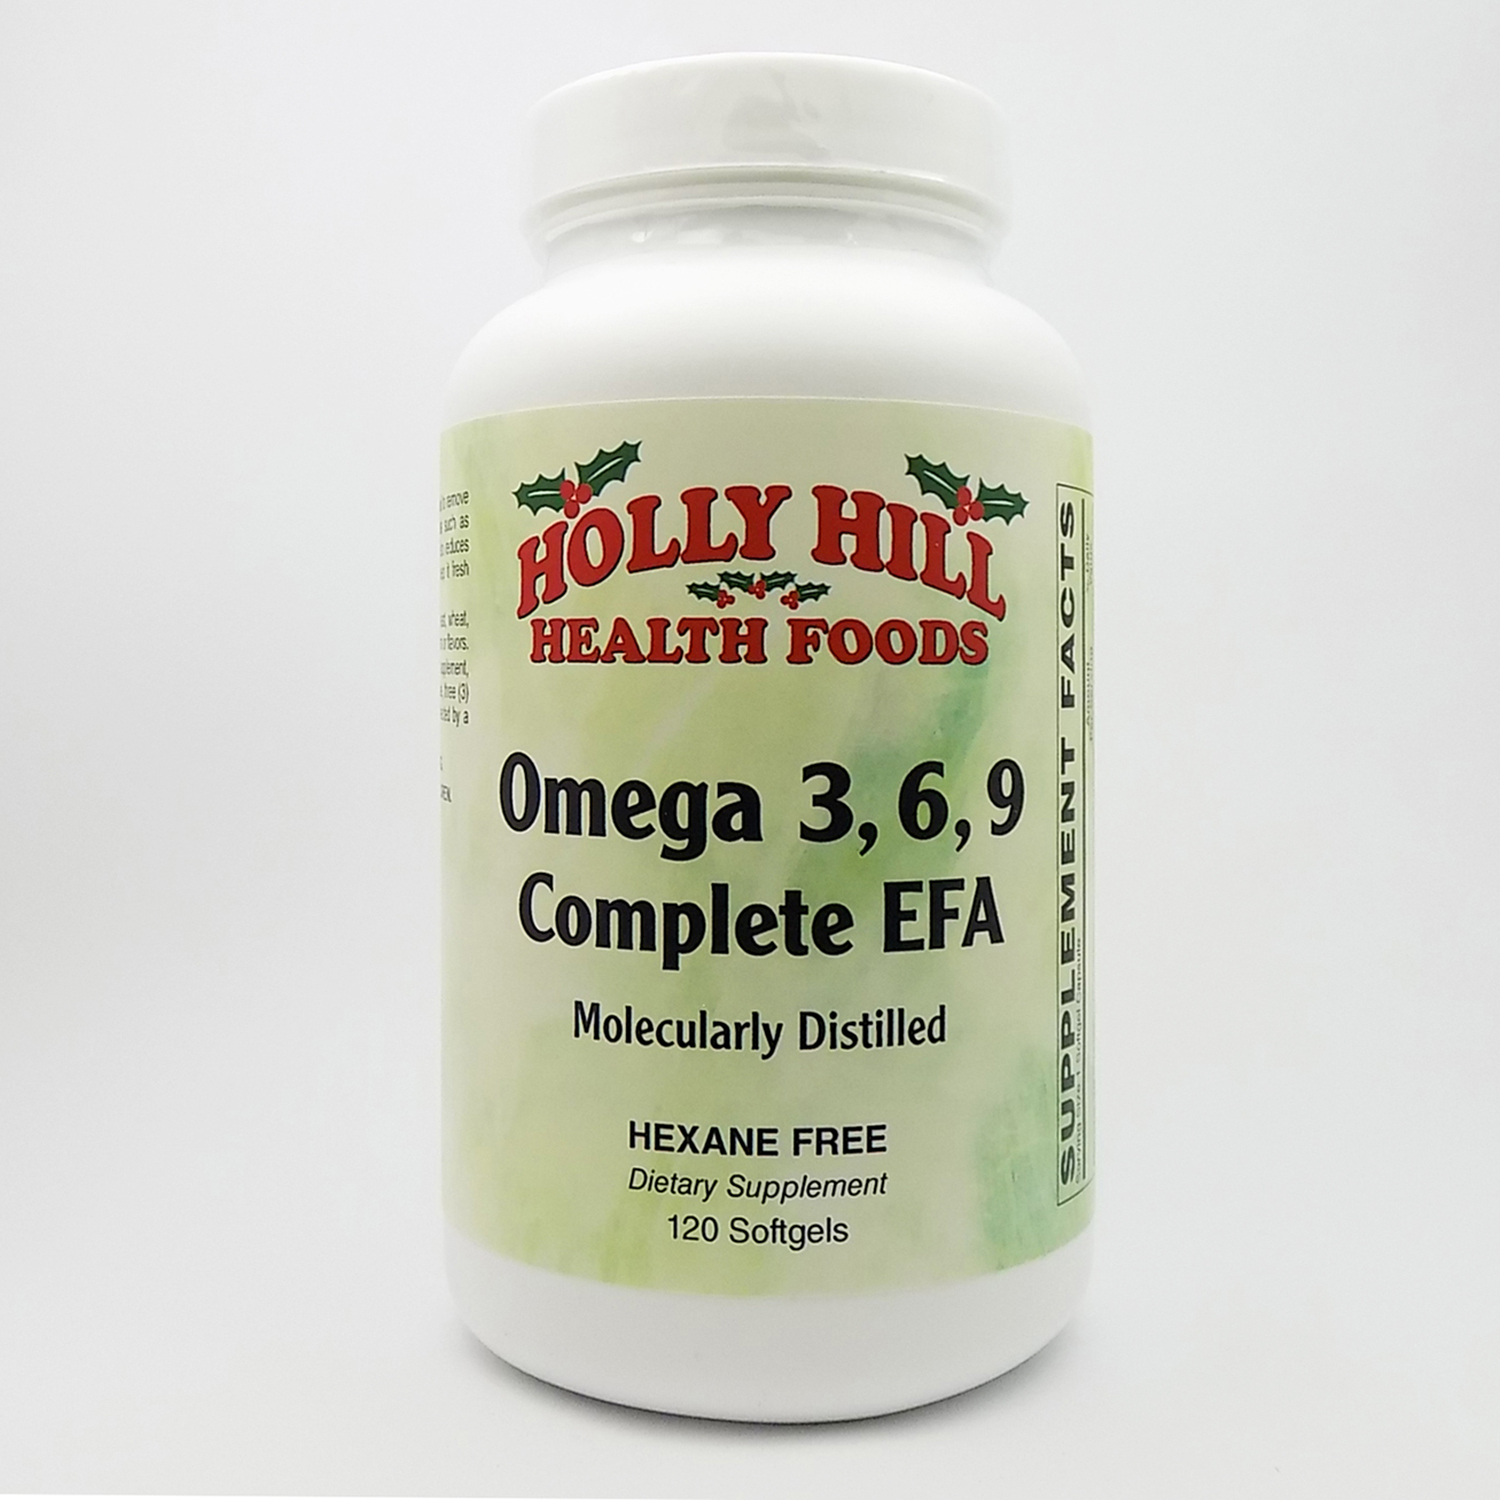 Holly Hill Health Foods, Omega 3-6-9, Hexane Free, 120 Softgels